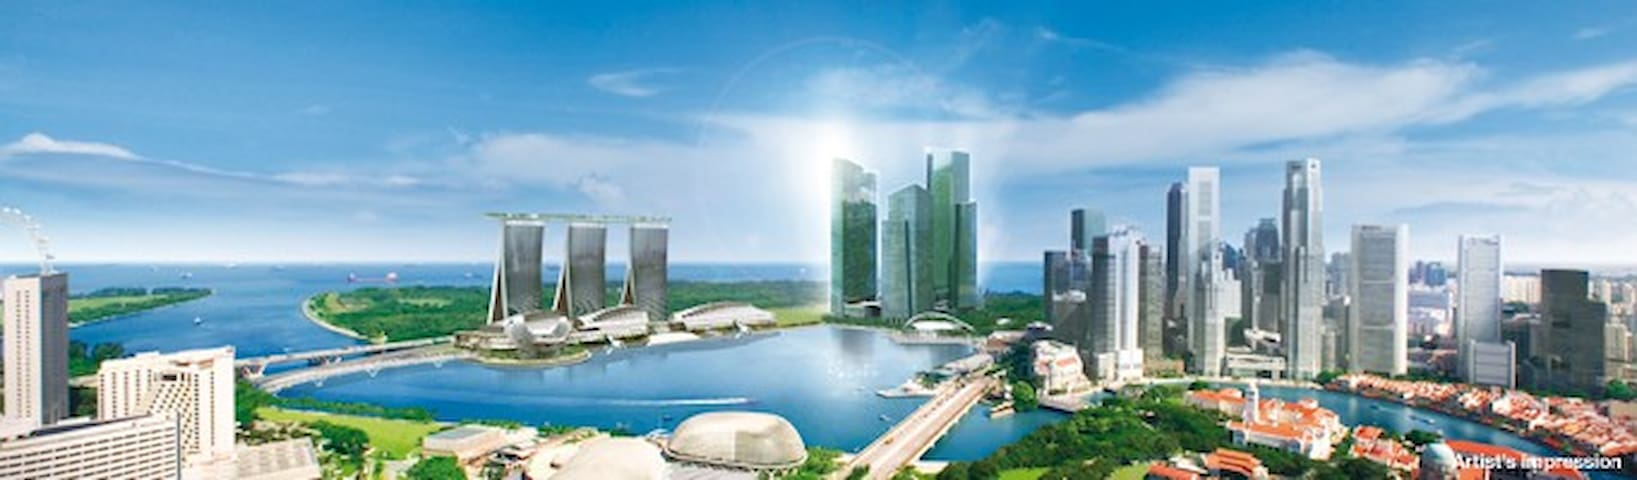 CBD Luxury Bedroom in Marina Bay!